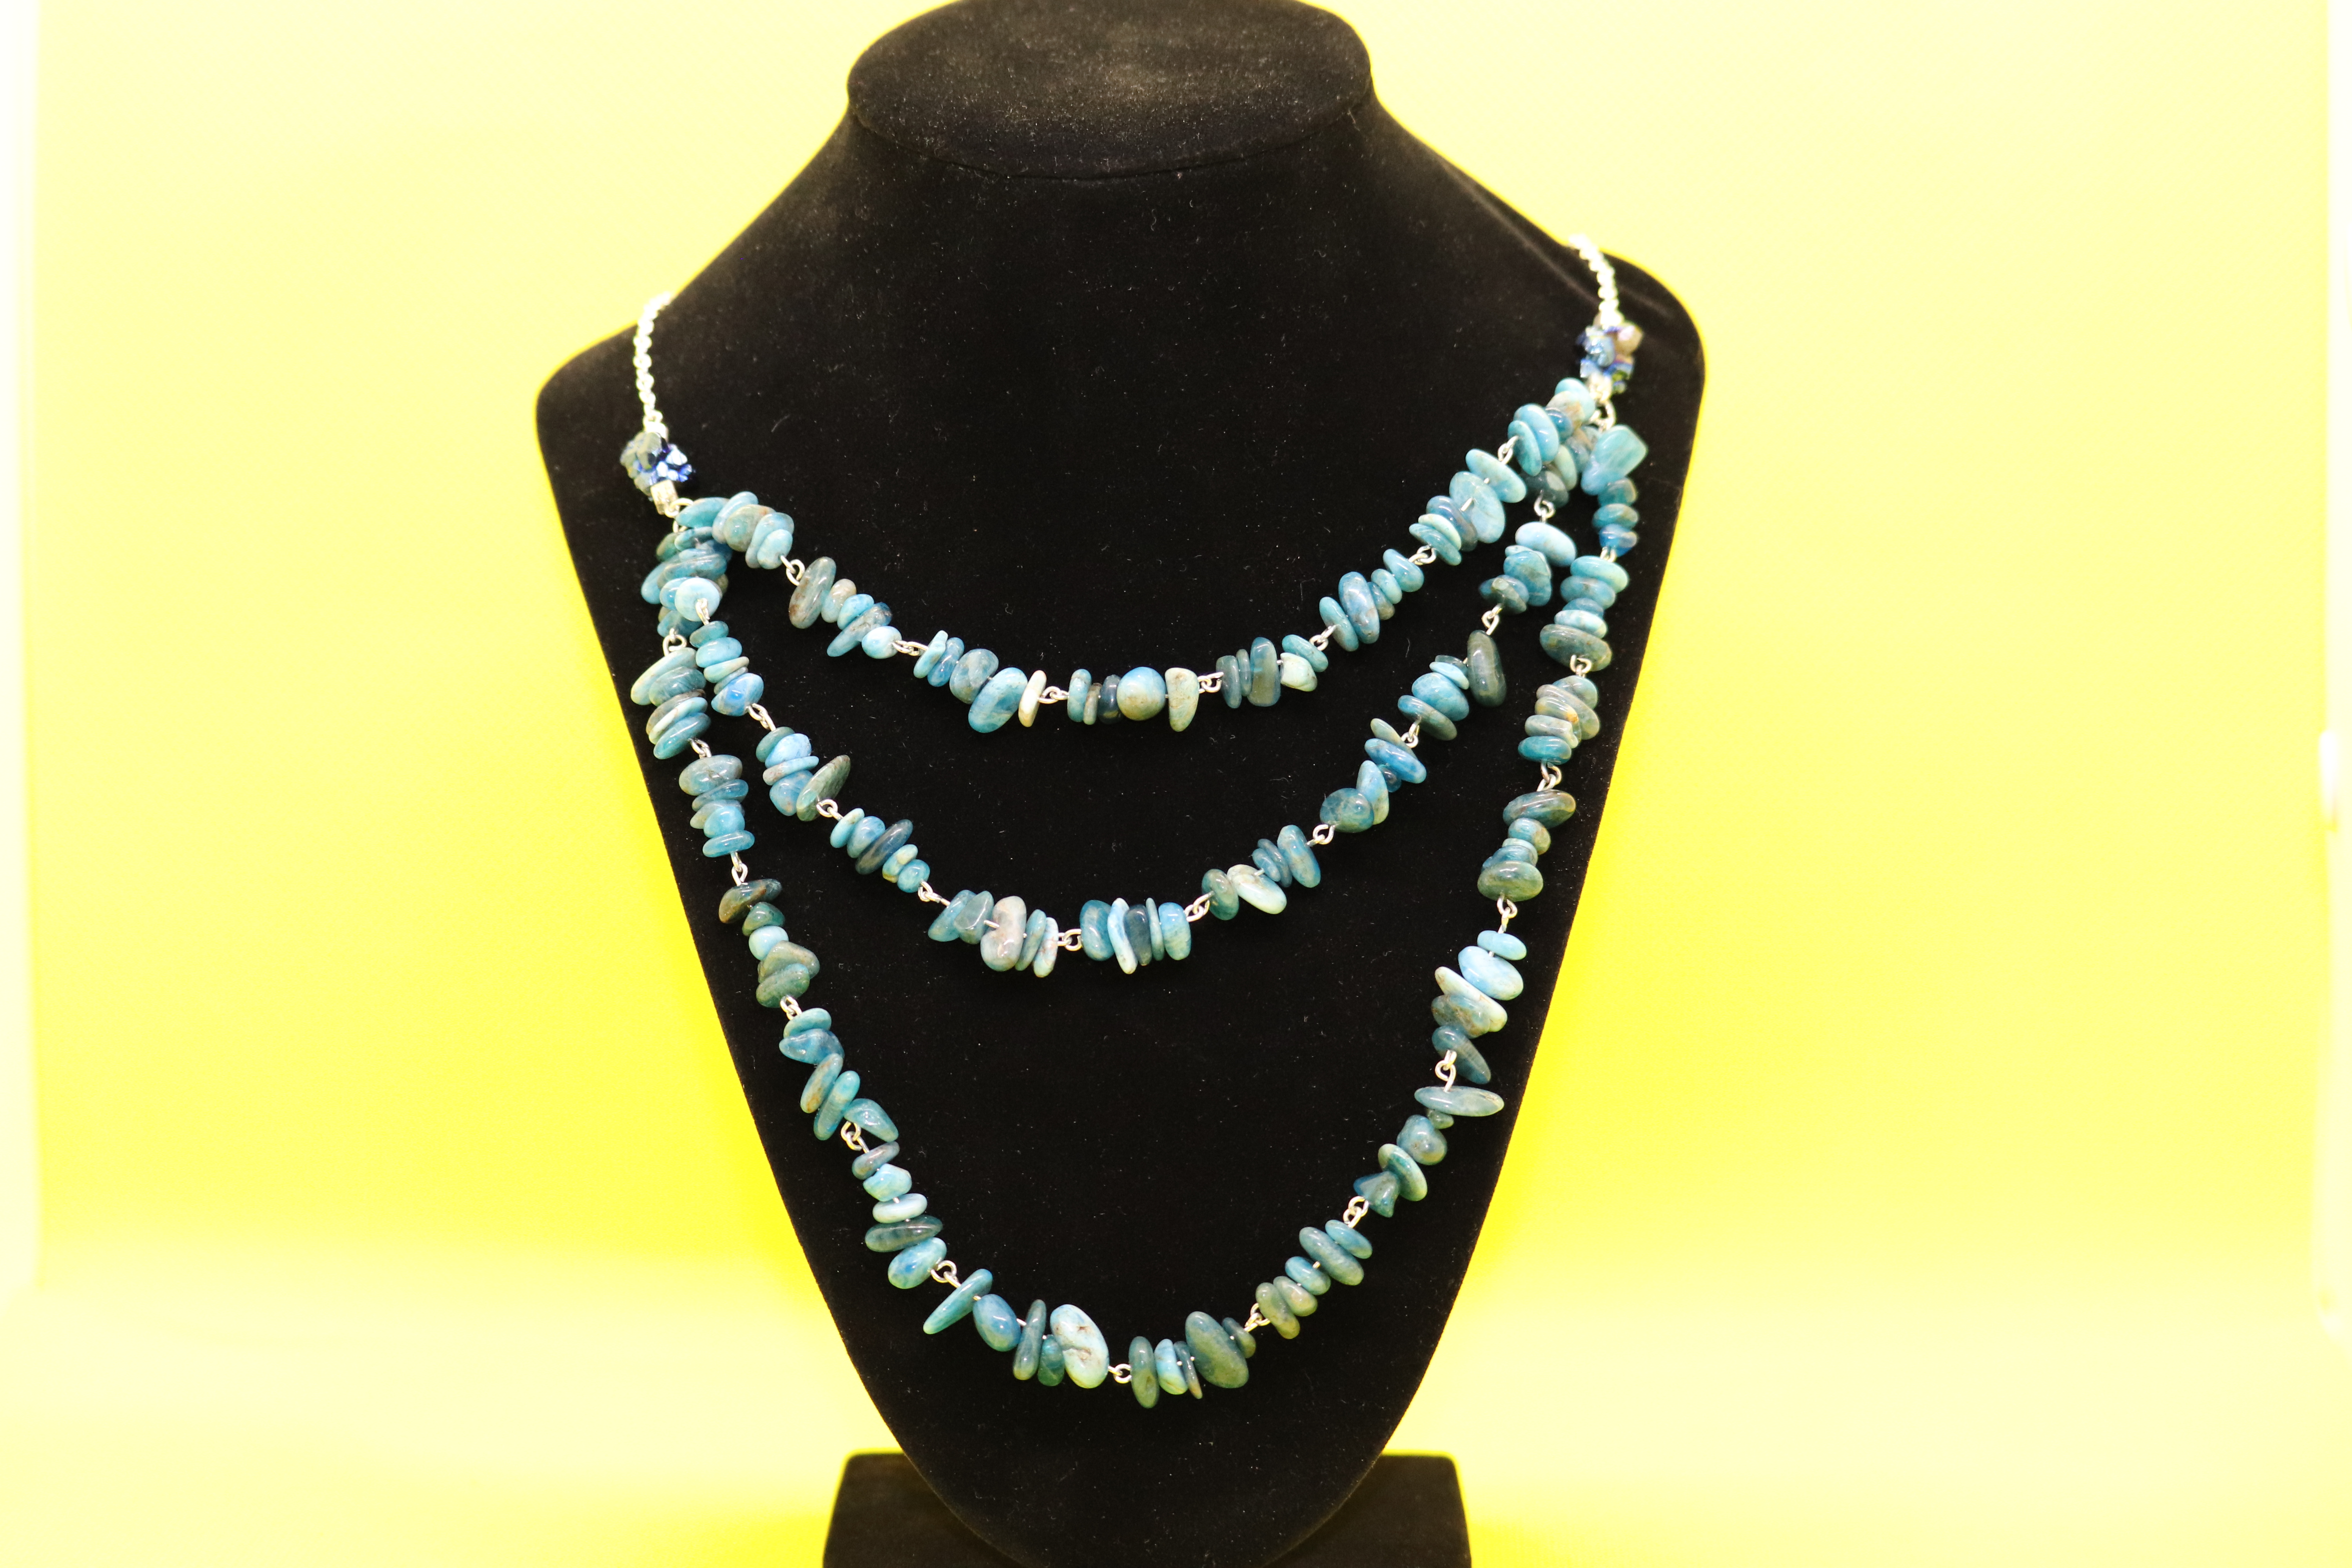 Blue Apatite Blue Chalcopyrite Nugget (176) - 3 Strand Necklace : Beaded